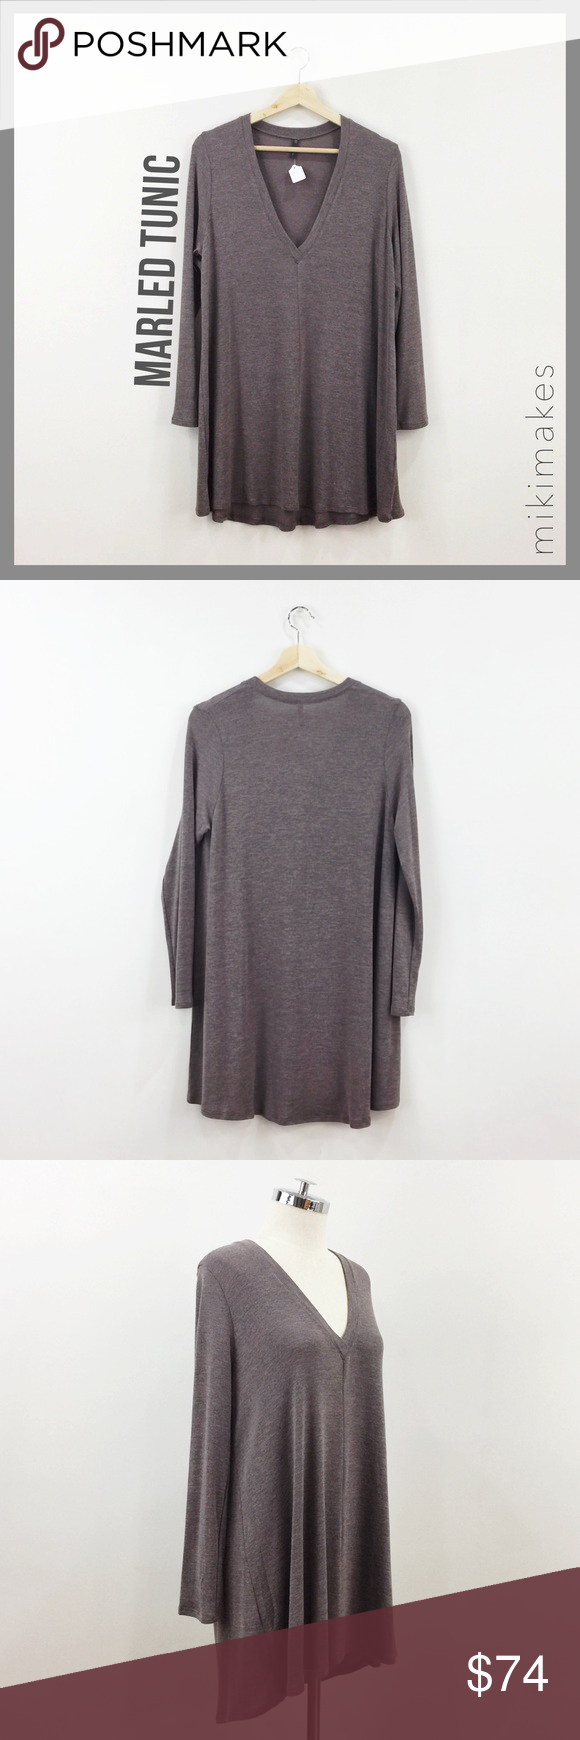 🆕 RILLER & FOUNT • rose & grey marled swing tunic • marled swing style tunic in dusty rose color and grey • deep v-neck • long sleeves  • super soft and perfect for layering  %   ✂️ Please see size chart in Riller & Fount boutique listing above ✂️ measurements might vary depending on the cut of the garments  • sorry no trades • please feel free to ask any questions  ❤️ @mikimakes Riller & Fount Tops Tees - Long Sleeve